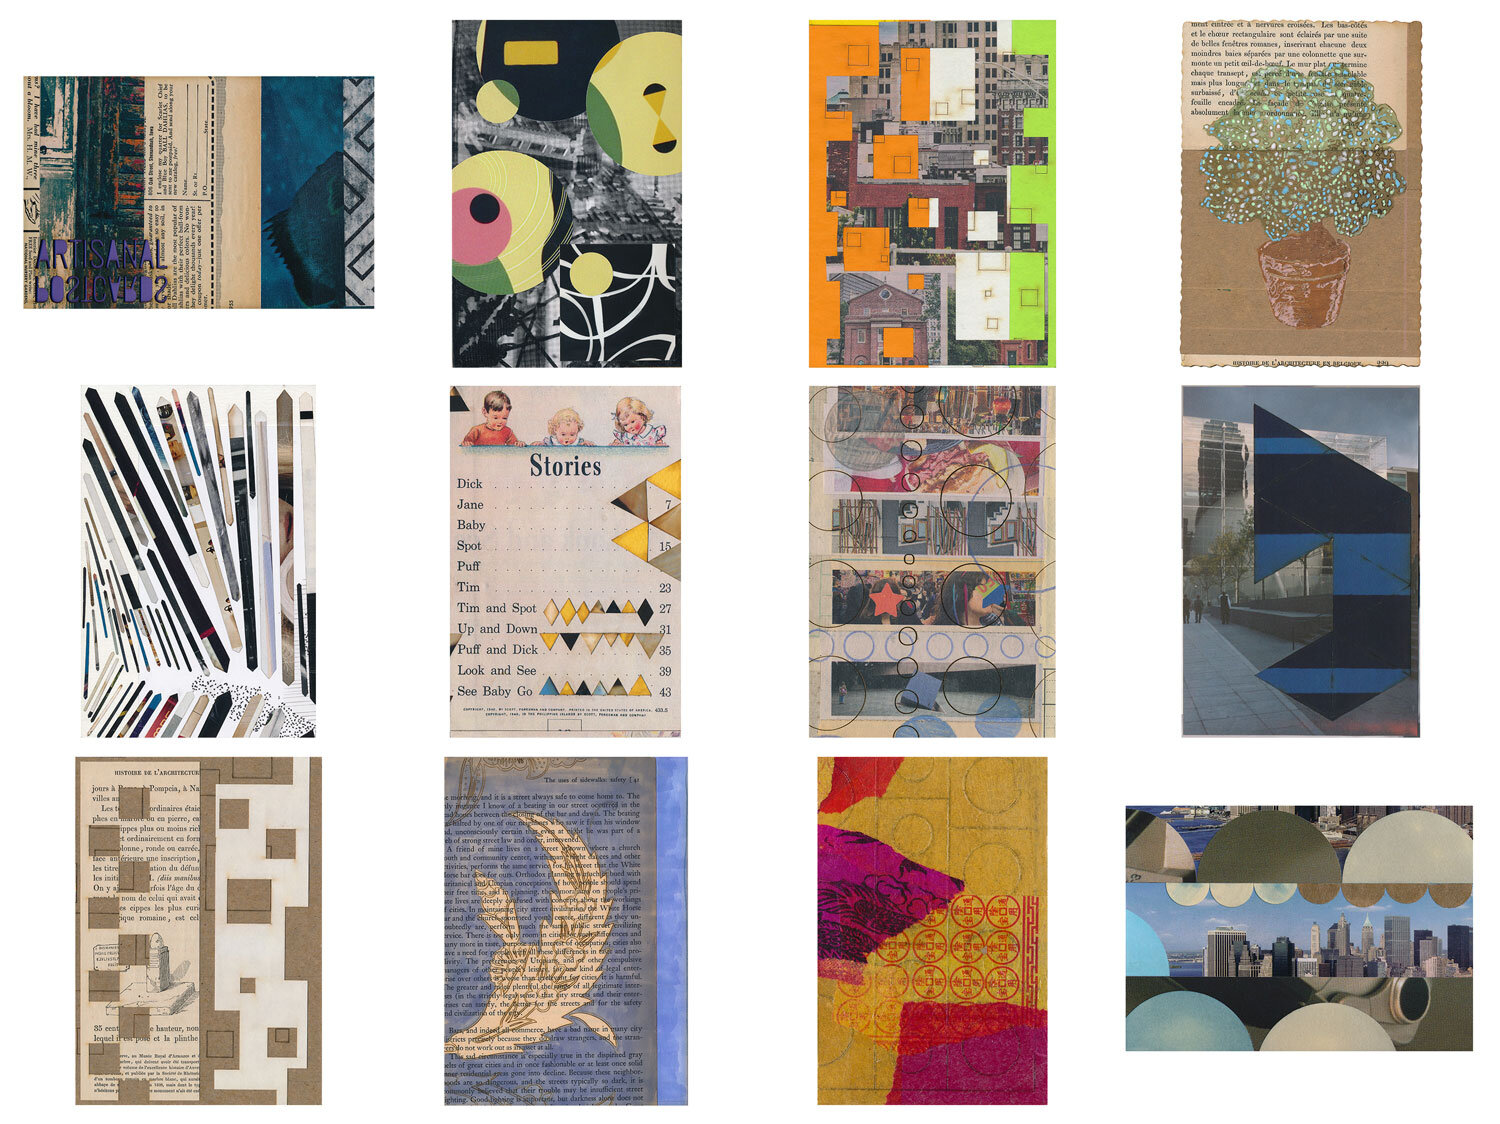 A completed mail art gift subscription, snail mailed small works of collage in postcard form to the Miller-Winters from Kicki, August 2016 - July 2017.  Artisanal Postcards Numbers 1,353 • 1,383 • 1,411 • 1,477 • 1,504 • 1,675 • 1,532 • 1,555 • 1,584 • 1,615 • 1,638 • 1,446